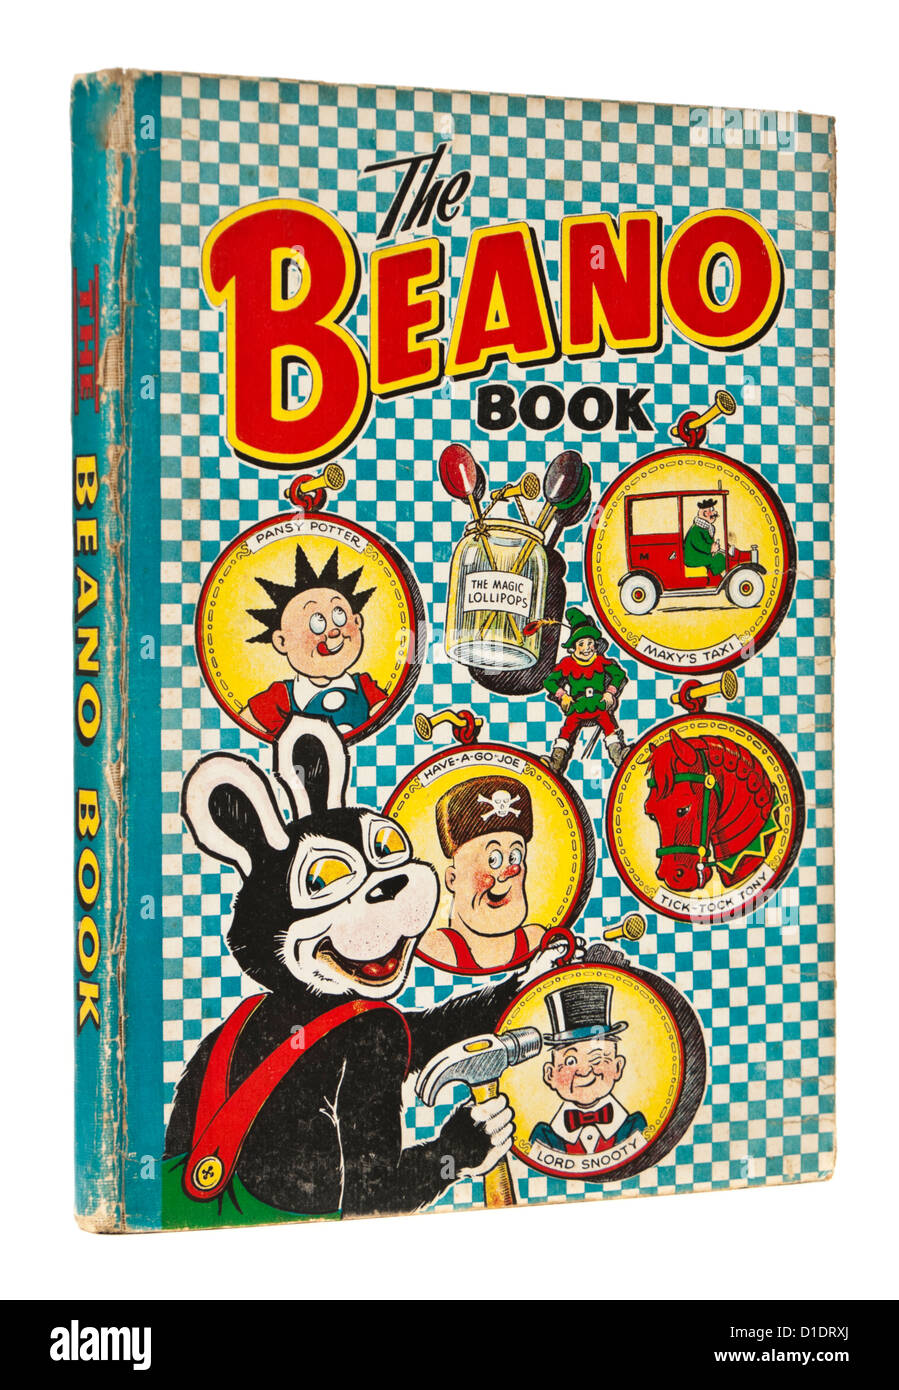 Rare 1952 Beano Annual by D.C. Thomson & Co, featuring Biffo the Bear, Lord Snooty, Pansy Potter, Have-a-Go - Stock Image